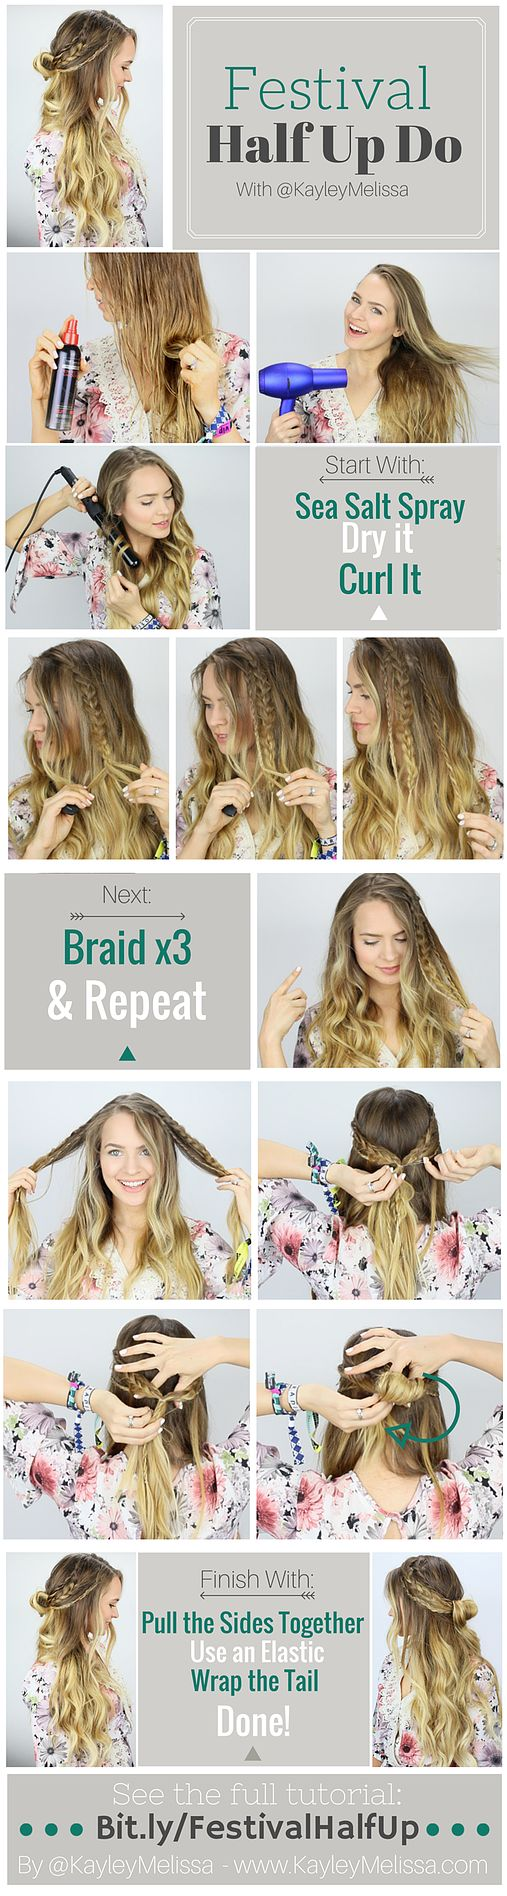 186 best Hairstyles images on Pinterest | Hairstyle ideas, Cute ...